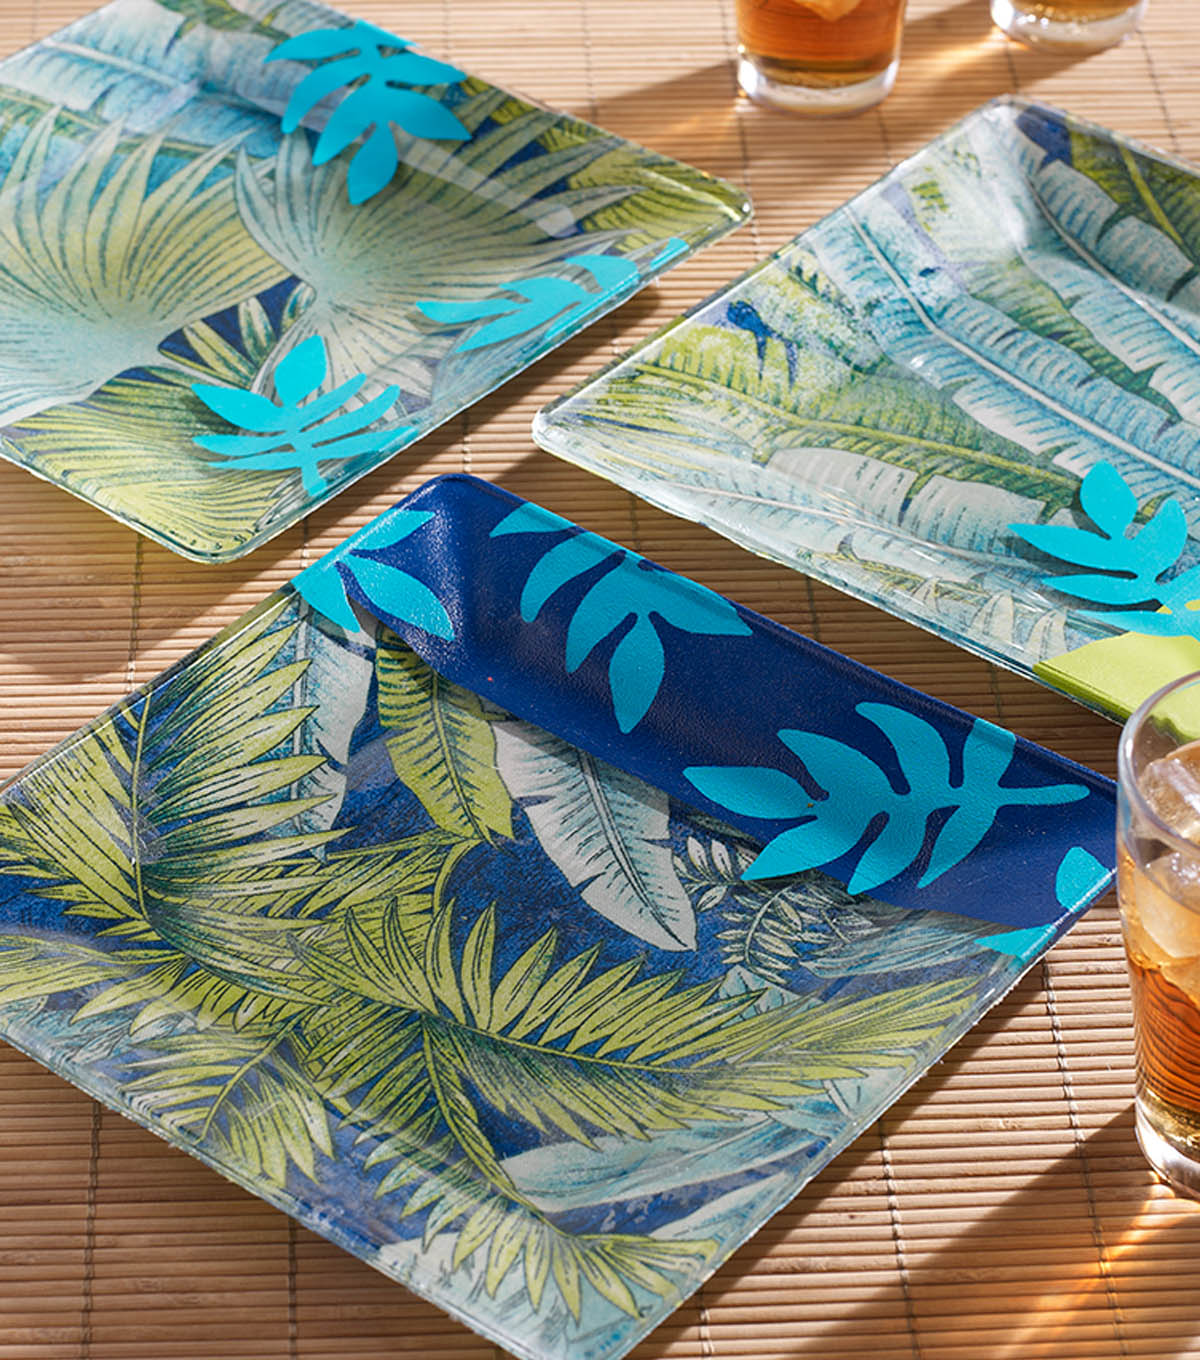 How To Make IPANEMA INSPIRED MOD PODGE PLATES